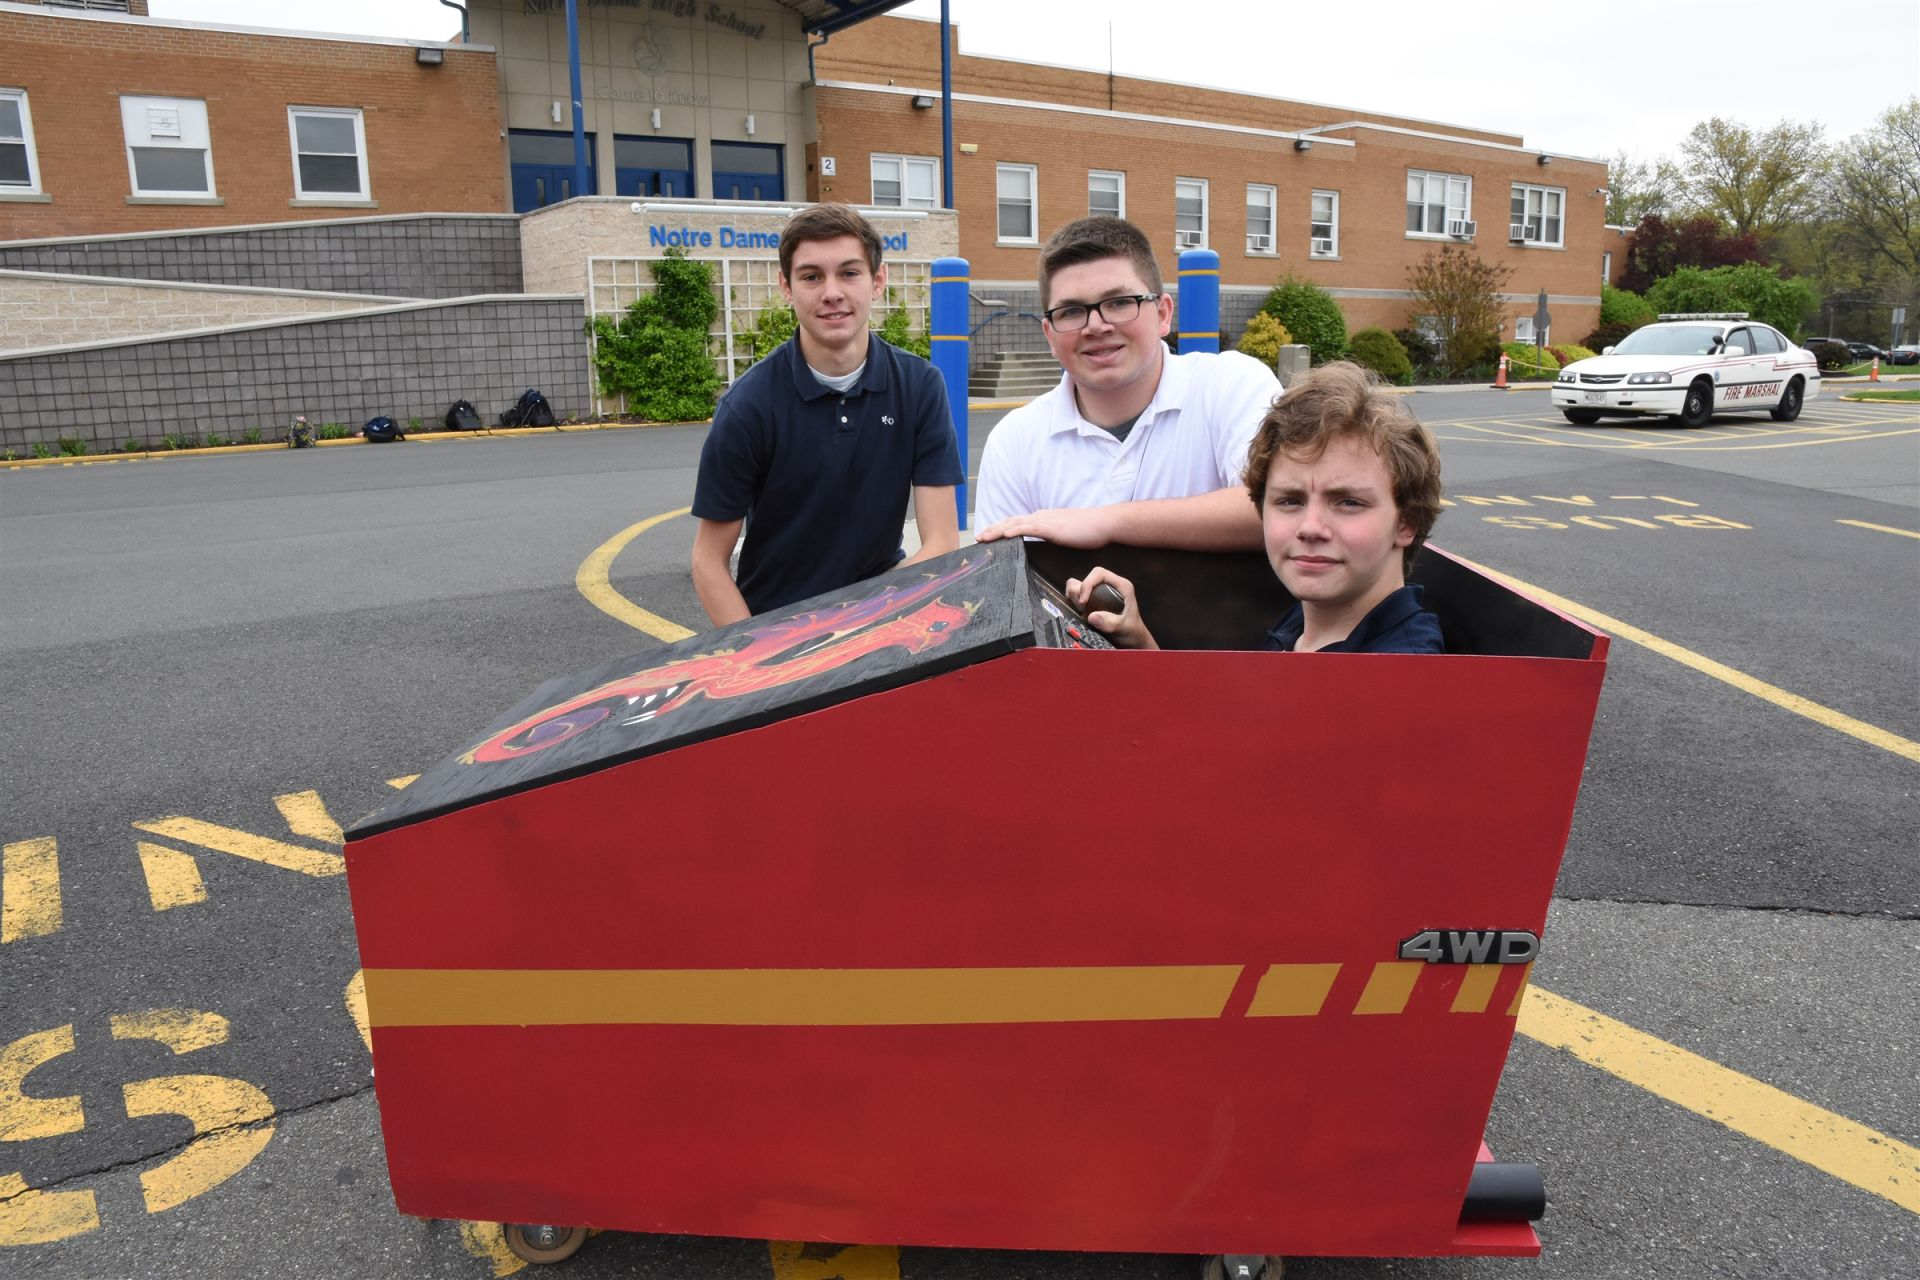 Robert VanErem, Eric Margadona, Rob Powell designed and built their chariot.